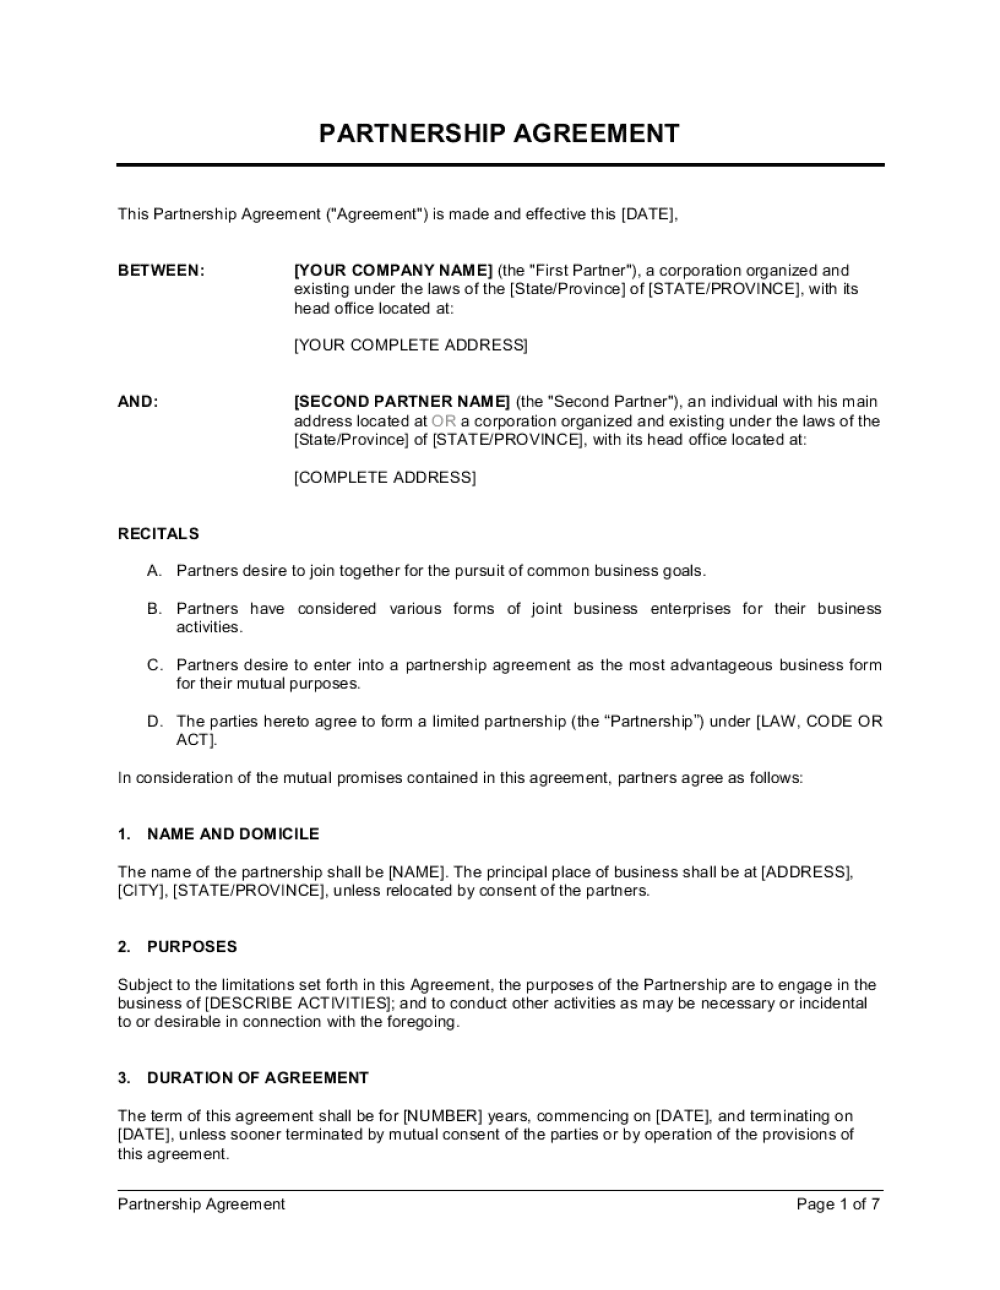 Business-in-a-Box's Partnership Agreement Template